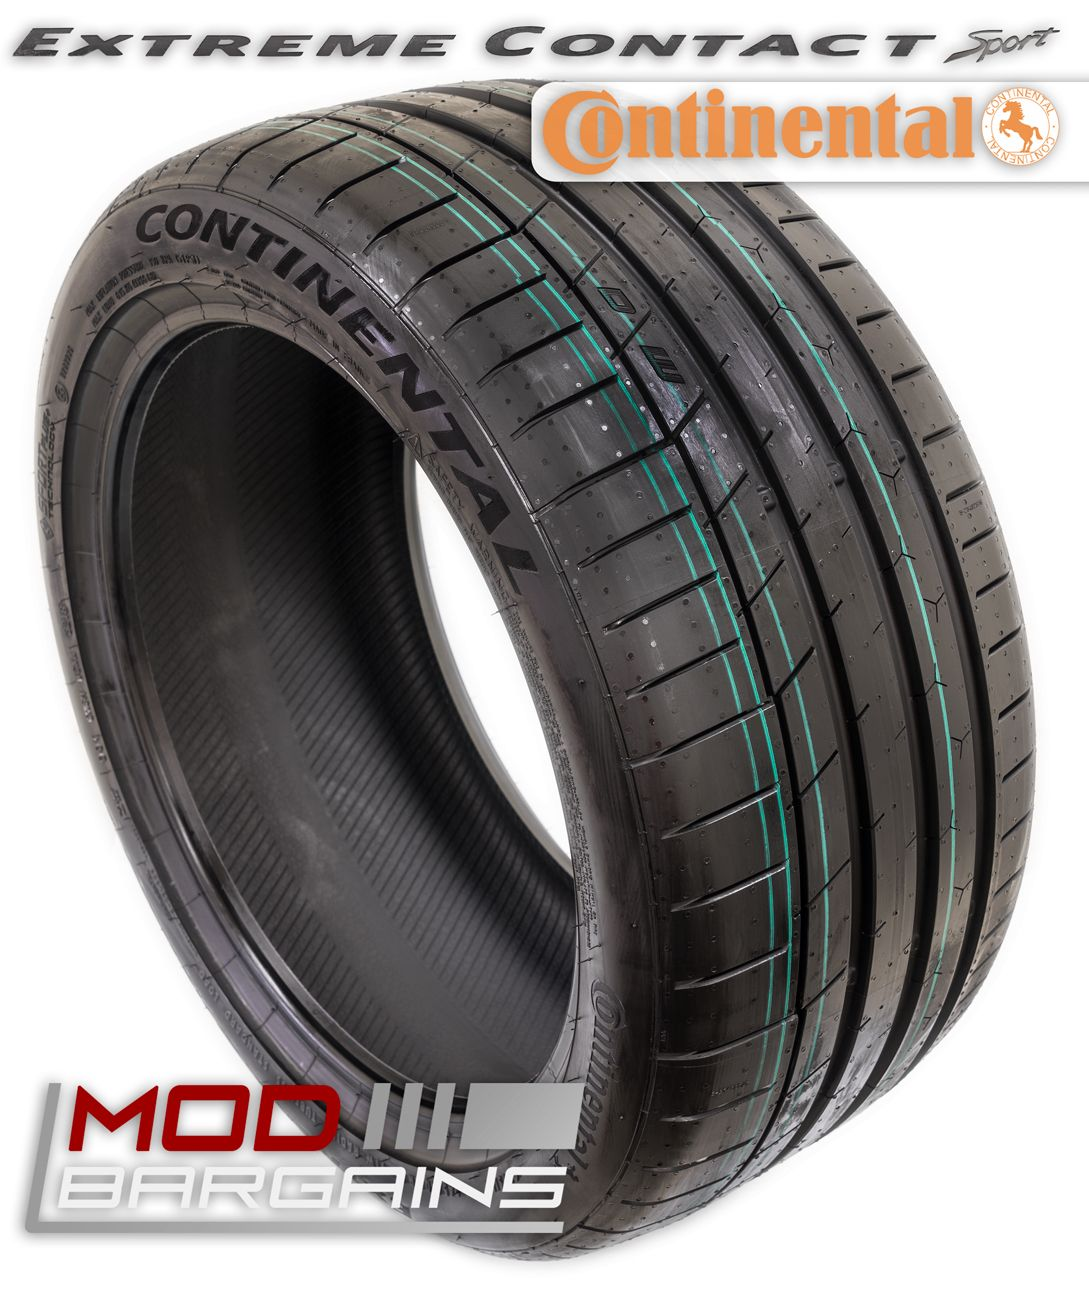 Continental Extreme Contact Sport Max Performance Summer Tire